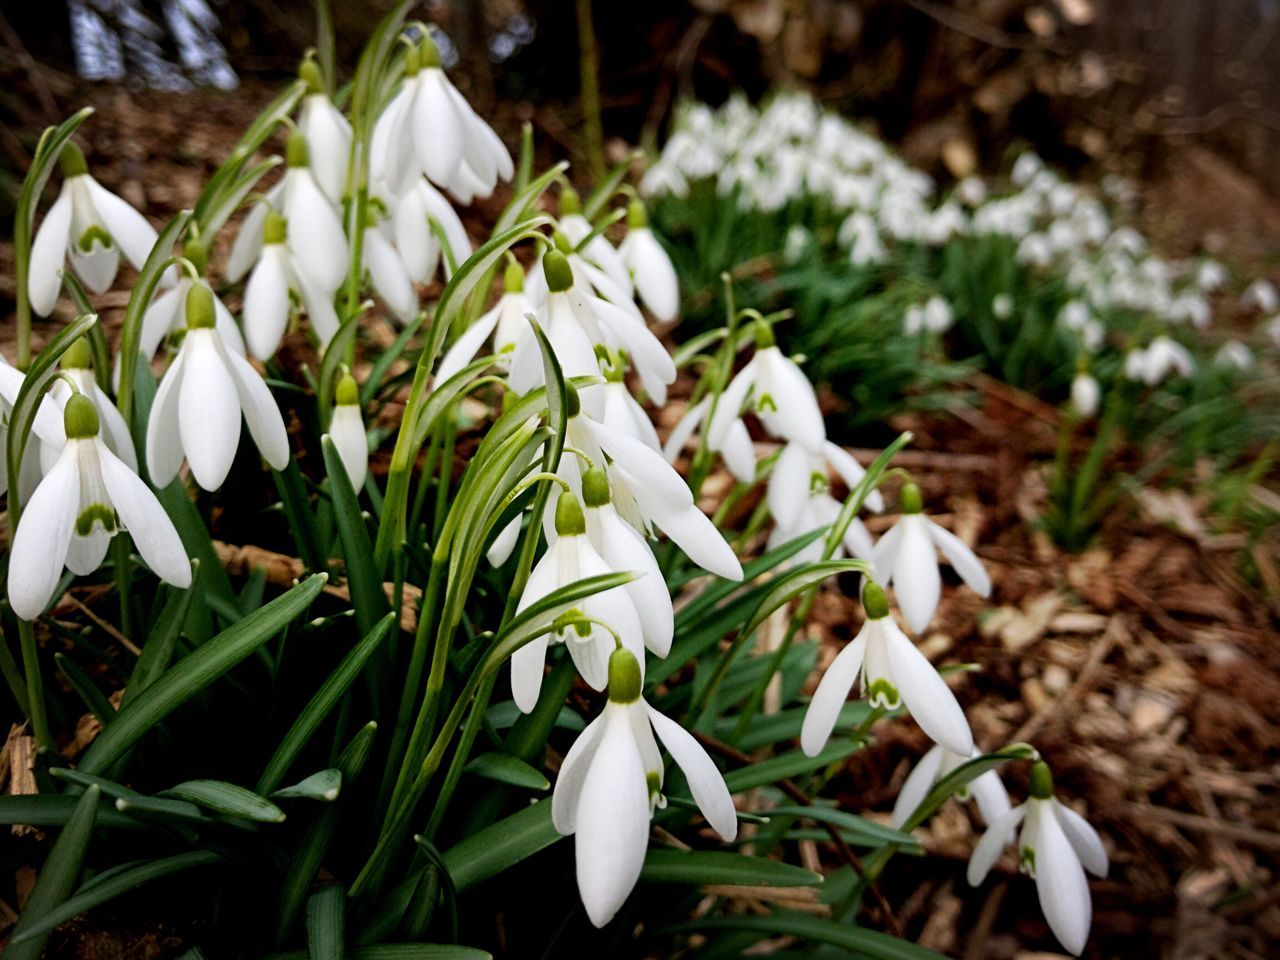 flower, white color, nature, petal, beauty in nature, snowdrop, growth, fragility, freshness, plant, flower head, blooming, outdoors, day, no people, close-up